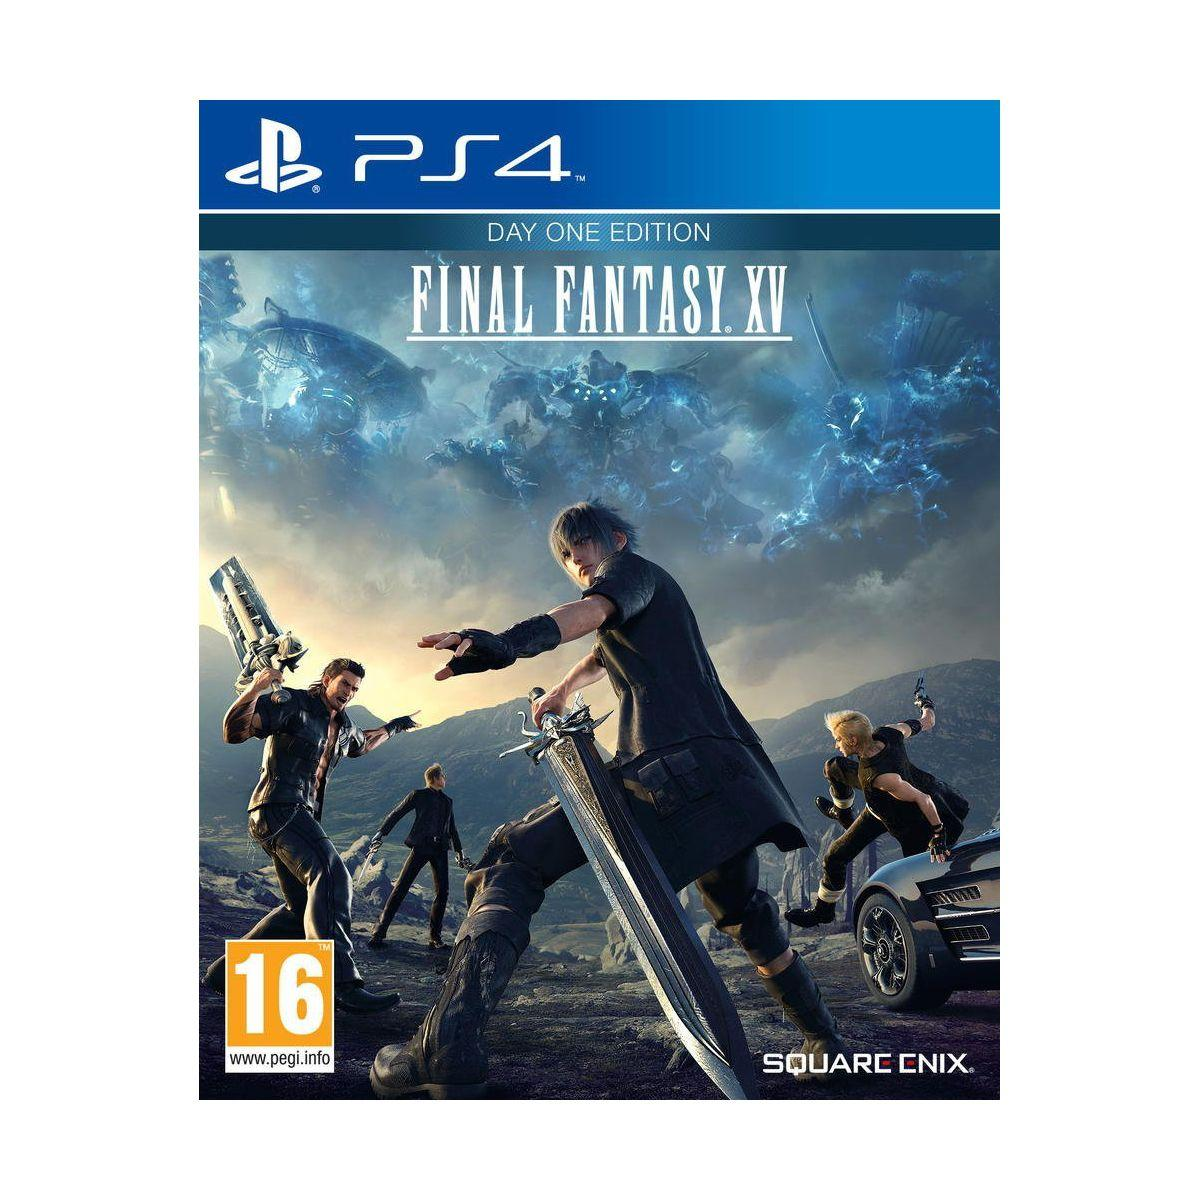 Jeu ps4 koch media final fantasy xv day one - 2% de remise immédiate avec le code : cool2 (photo)